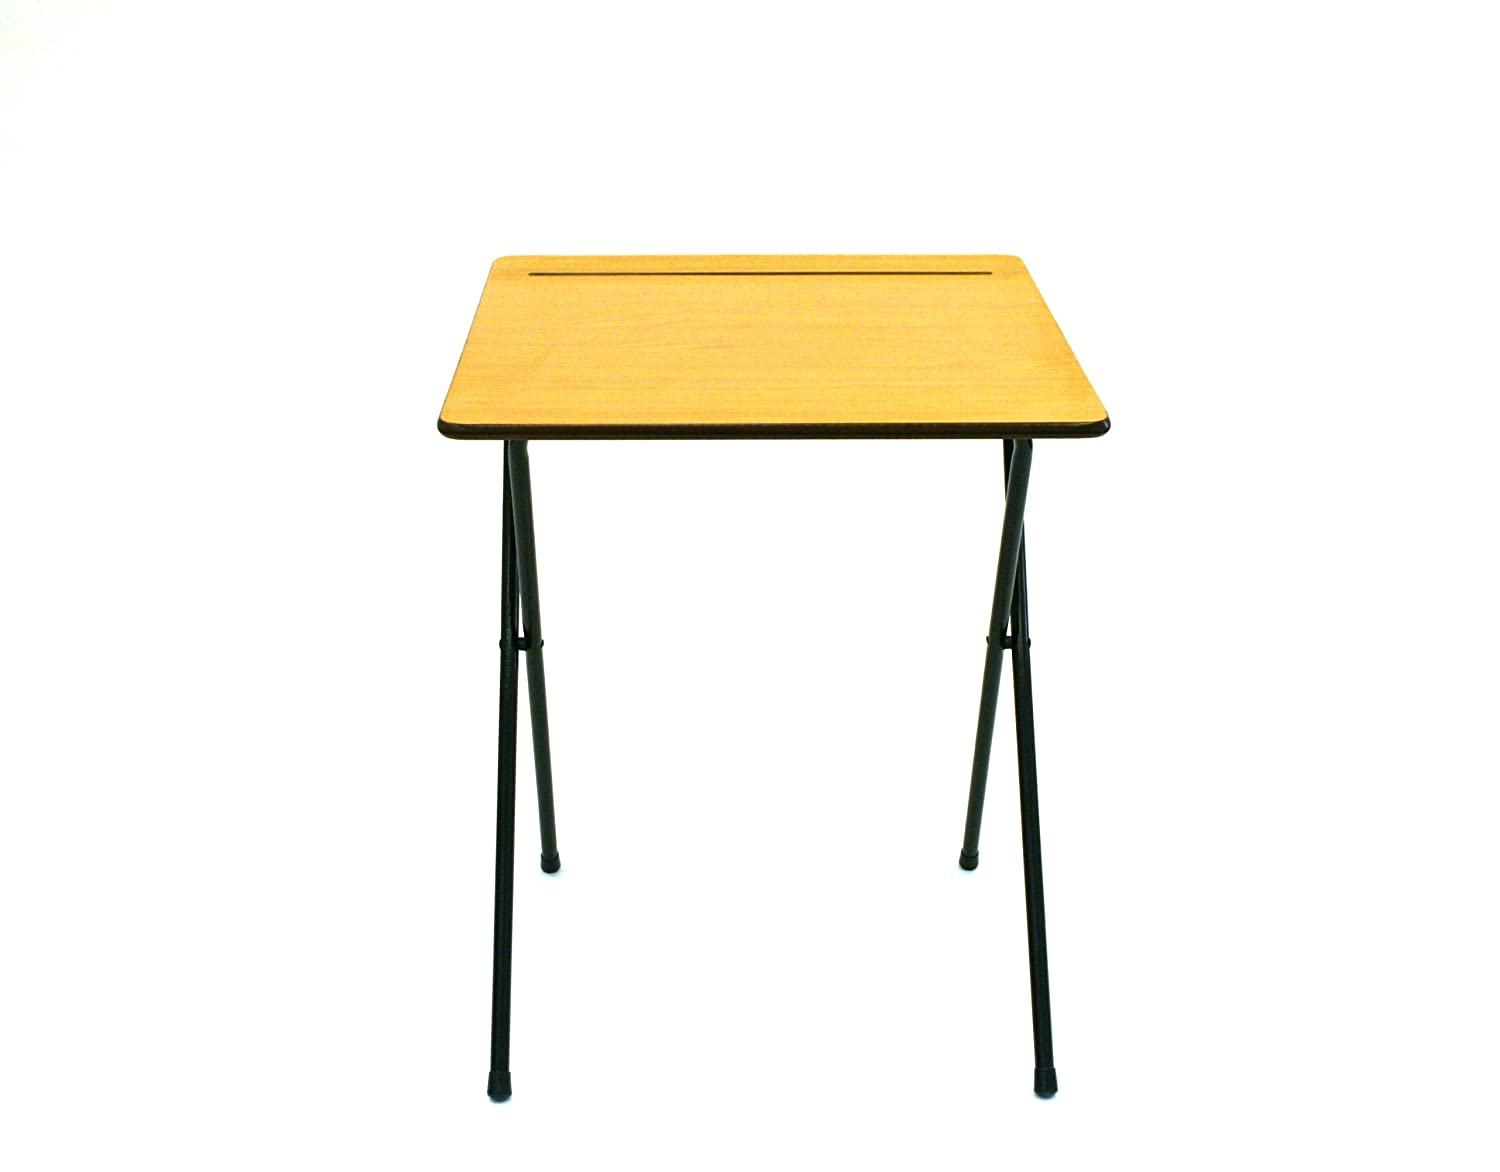 foldable office table. Folding Exam Desk, Table, School Desk: Amazon.co.uk: Office Products Foldable Table L